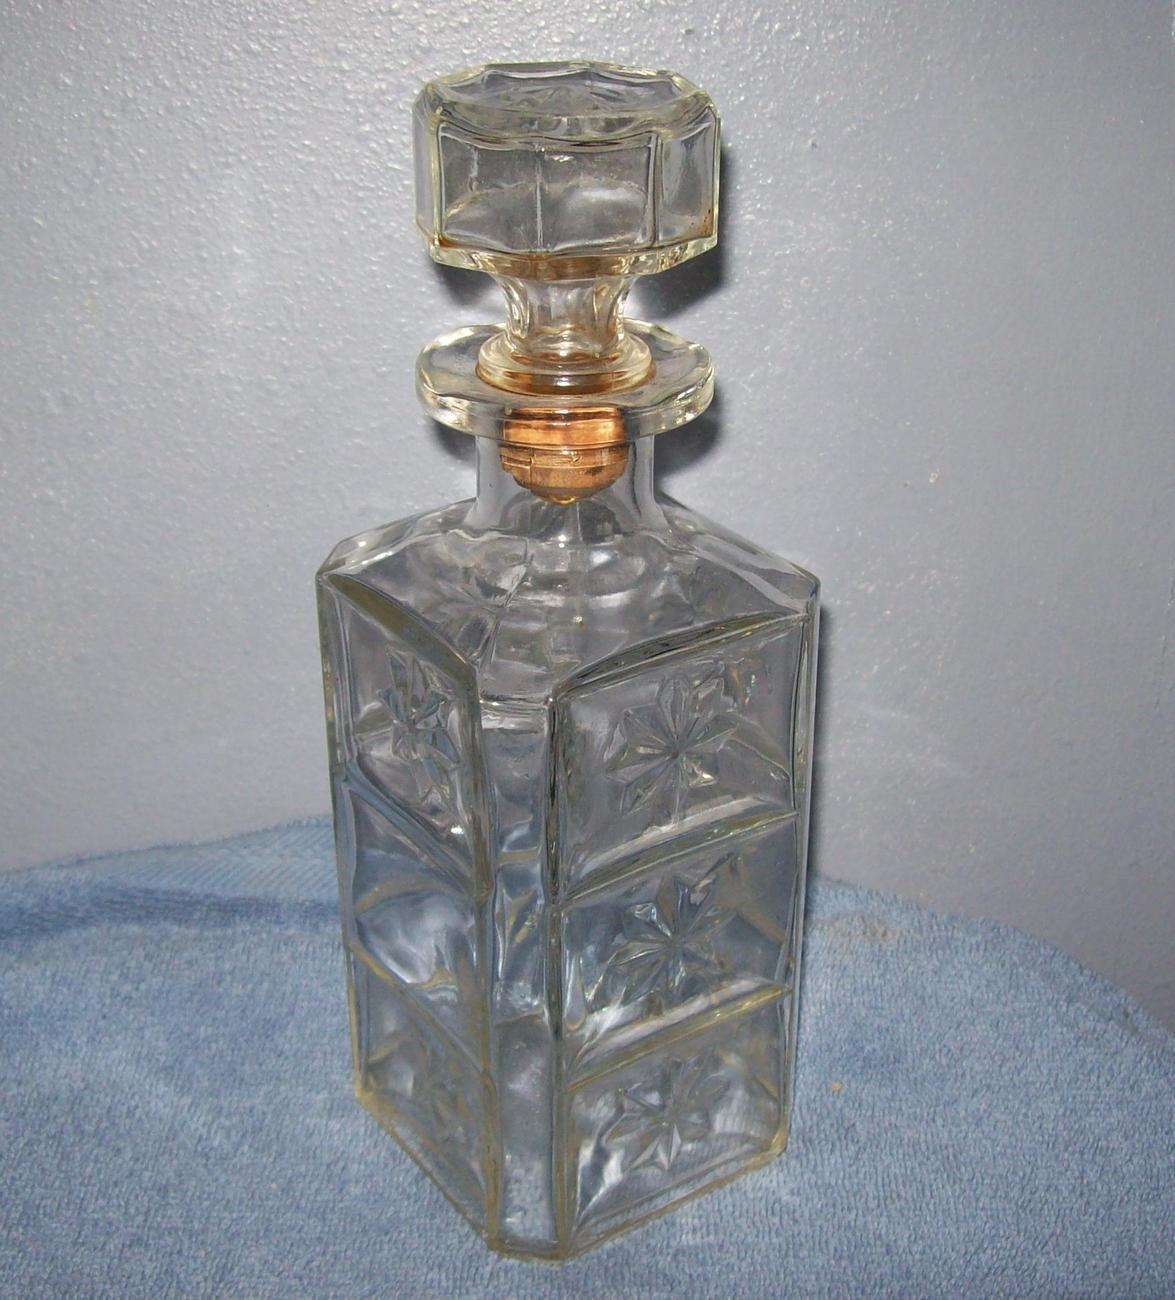 Vintage cut glass clear decanter bottle